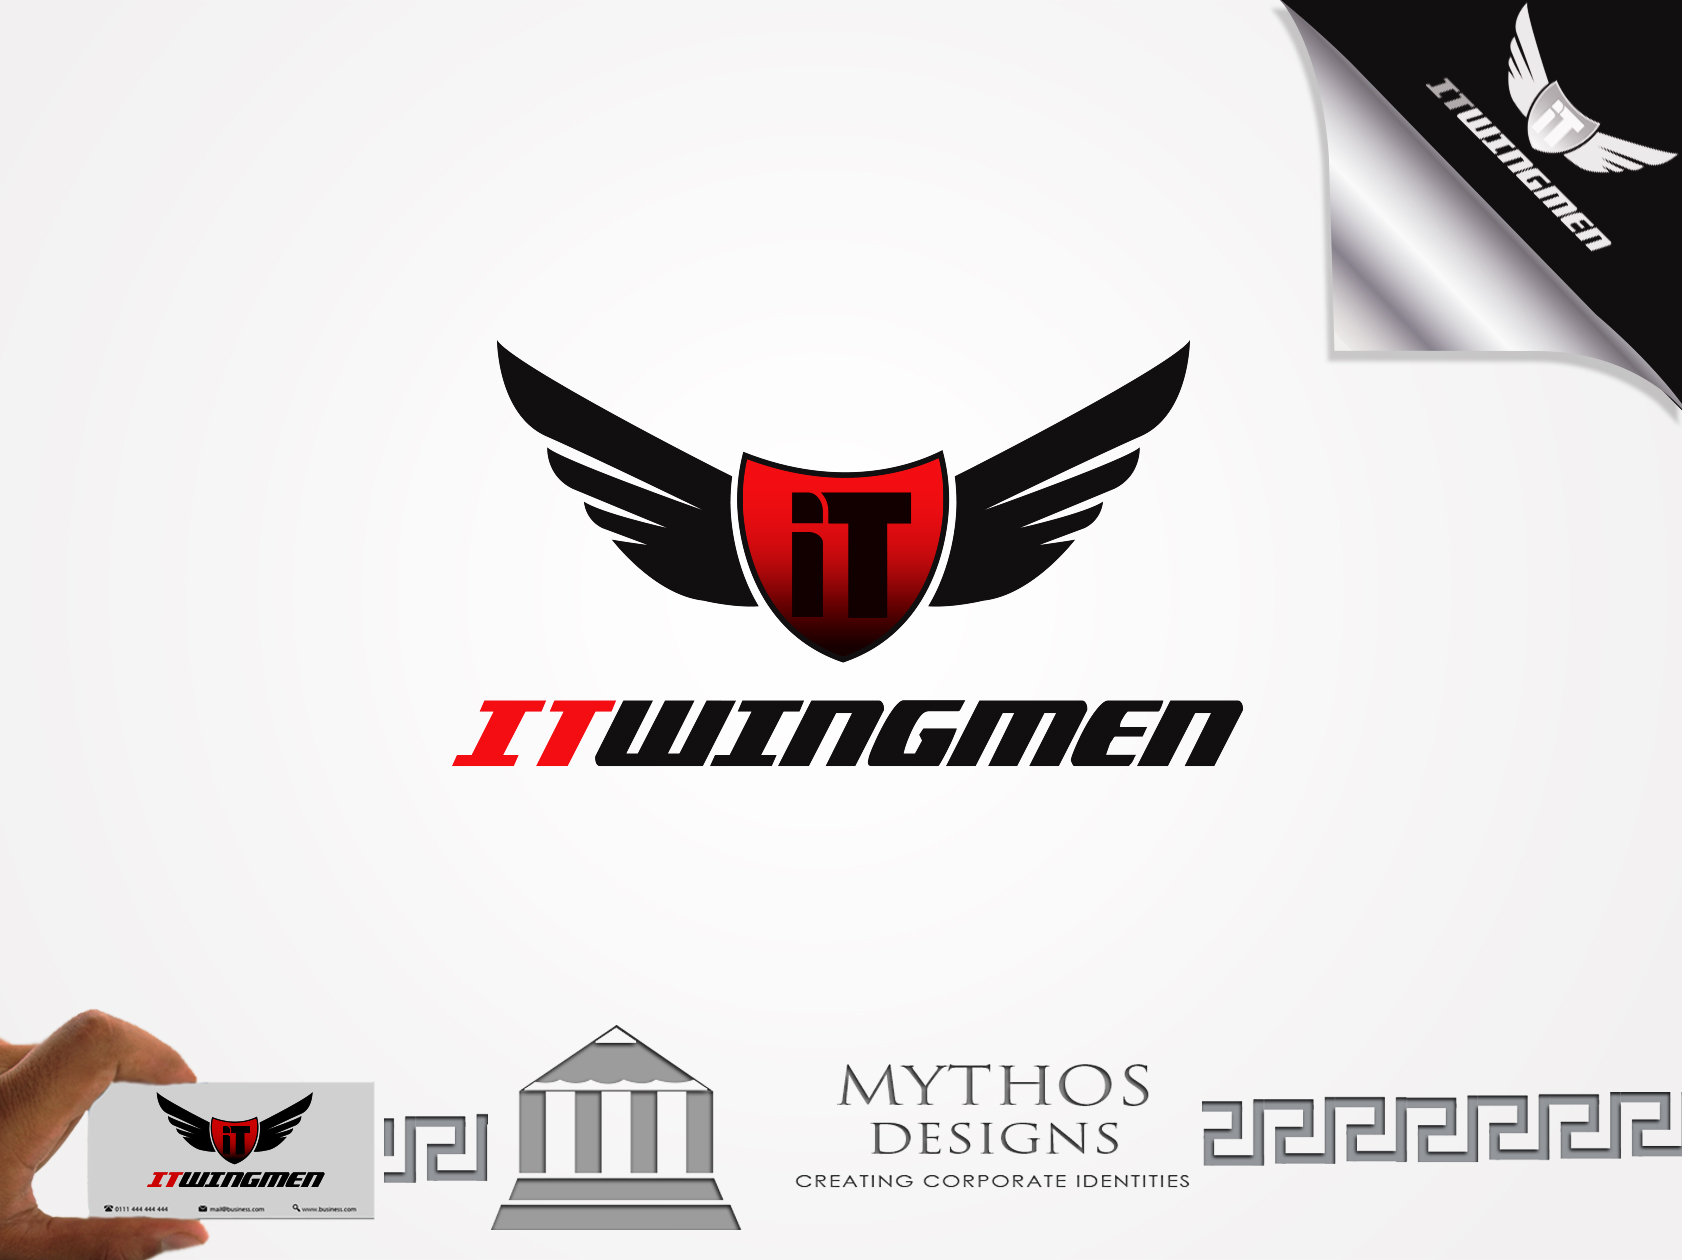 Logo Design by Mythos Designs - Entry No. 65 in the Logo Design Contest New Logo Design for IT Wingmen.